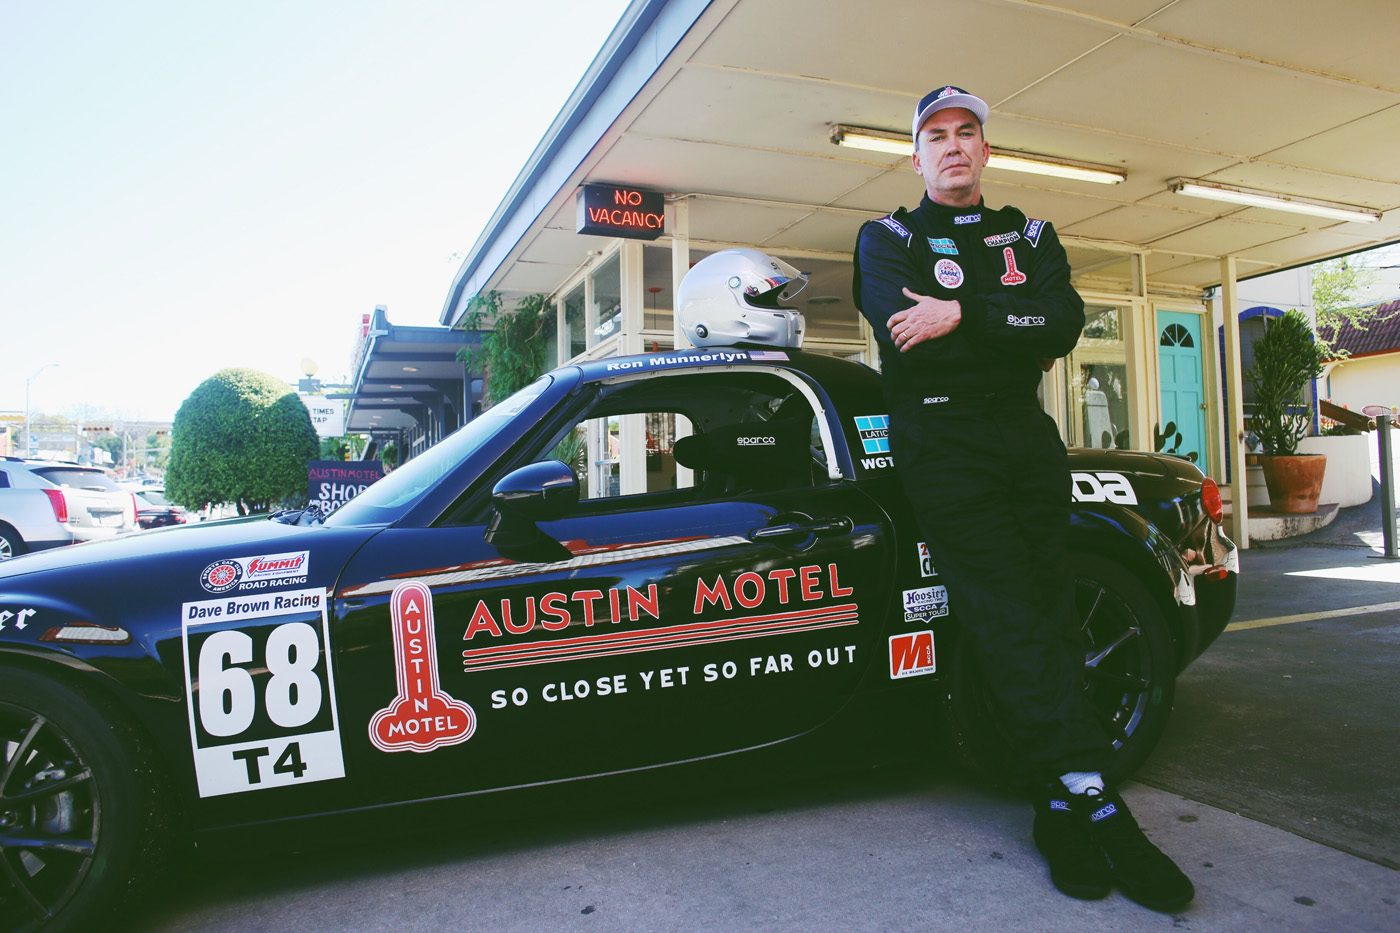 Ron Munnerlyn: Official Race Car Driver of the Austin Motel and Honorary Local